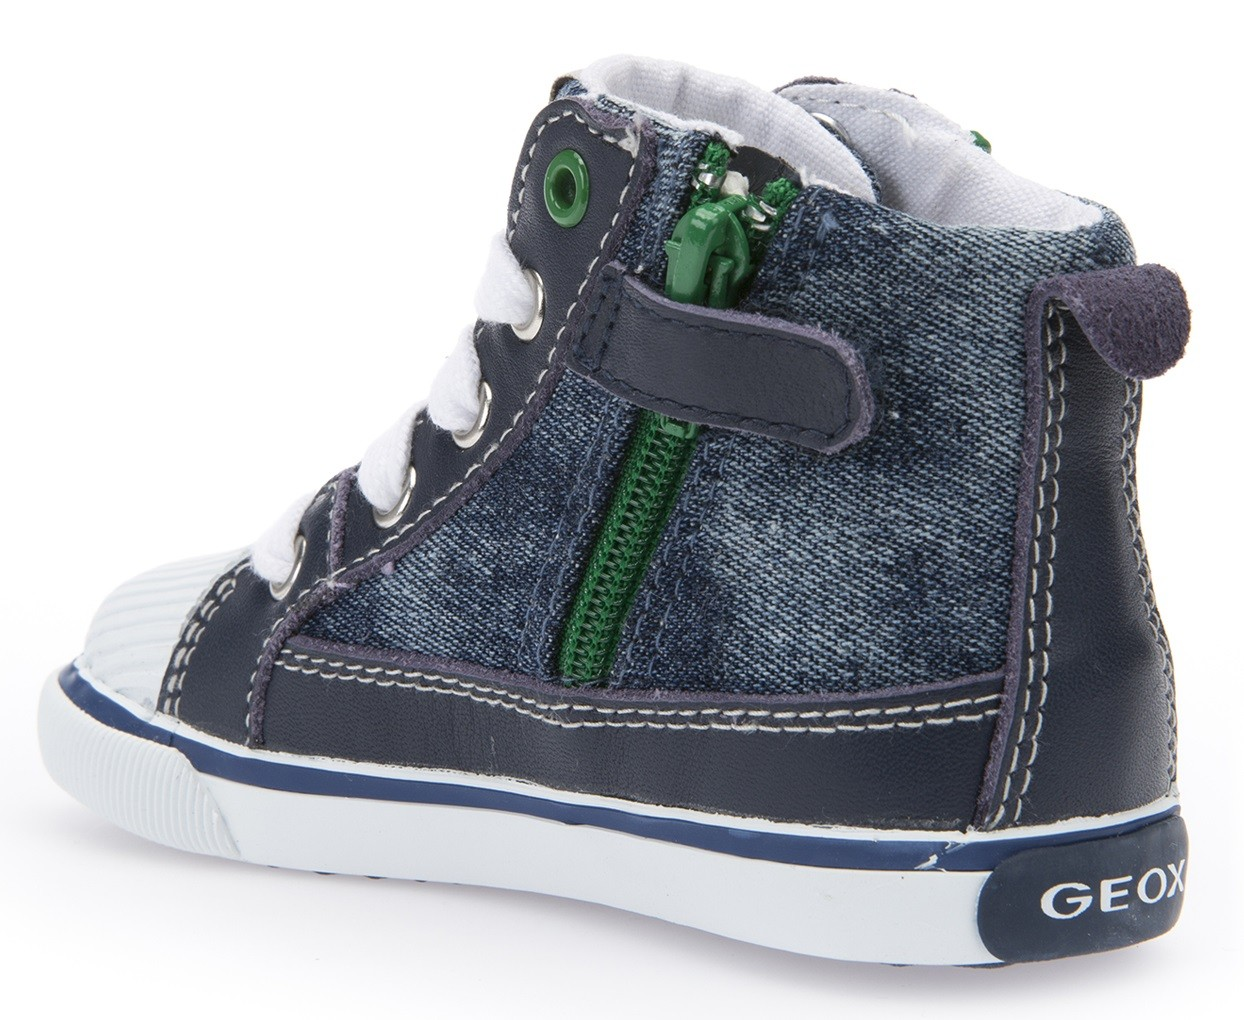 geox kiwi navy green canvas boots   little wanderers